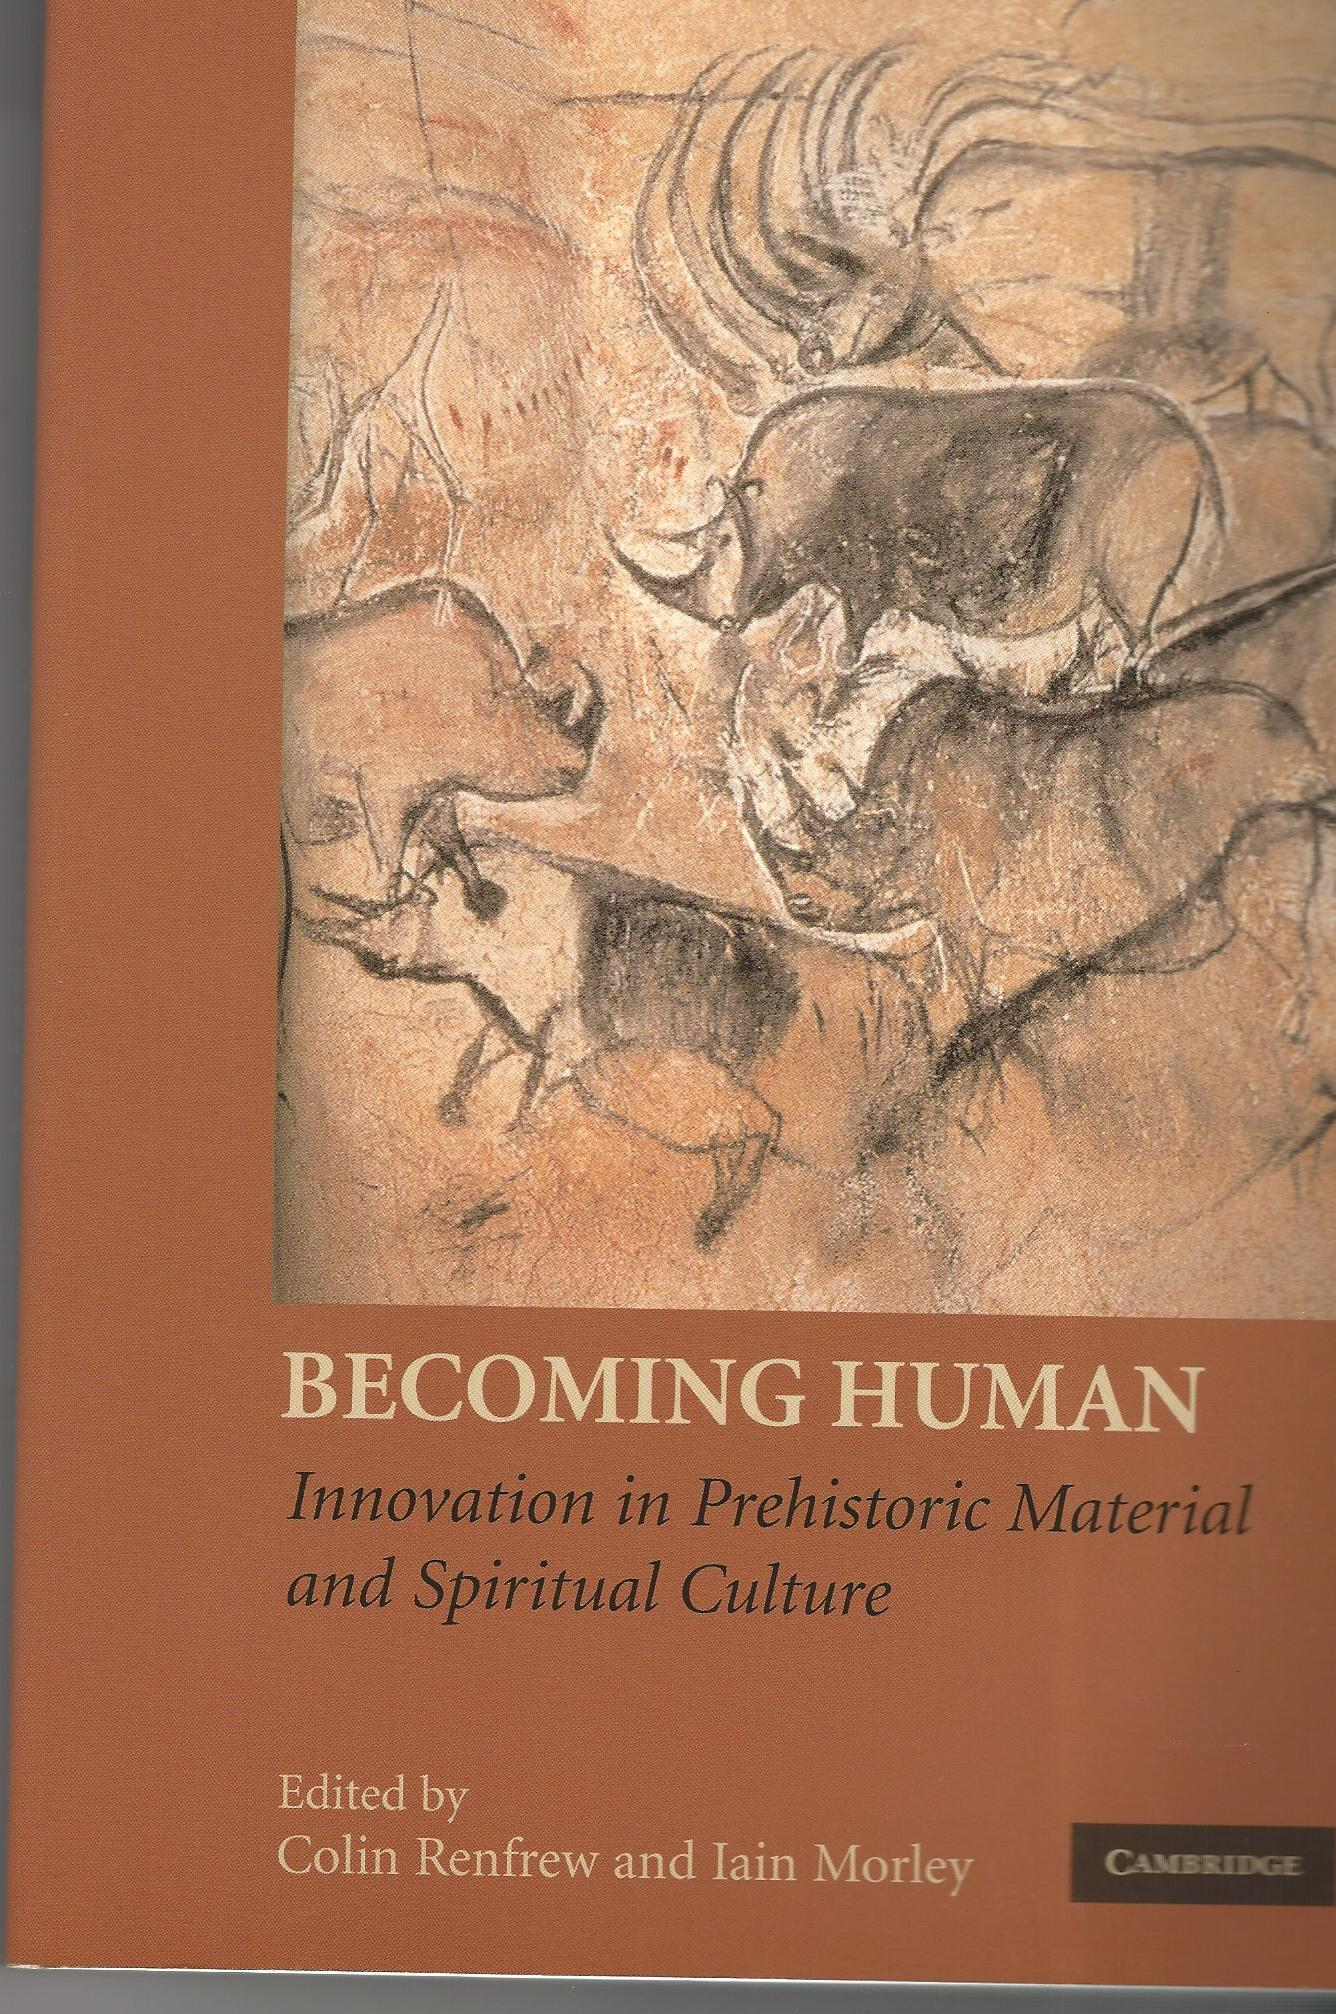 Image for Becoming Human: Innovation in Prehistoric Material and Spiritual Culture.